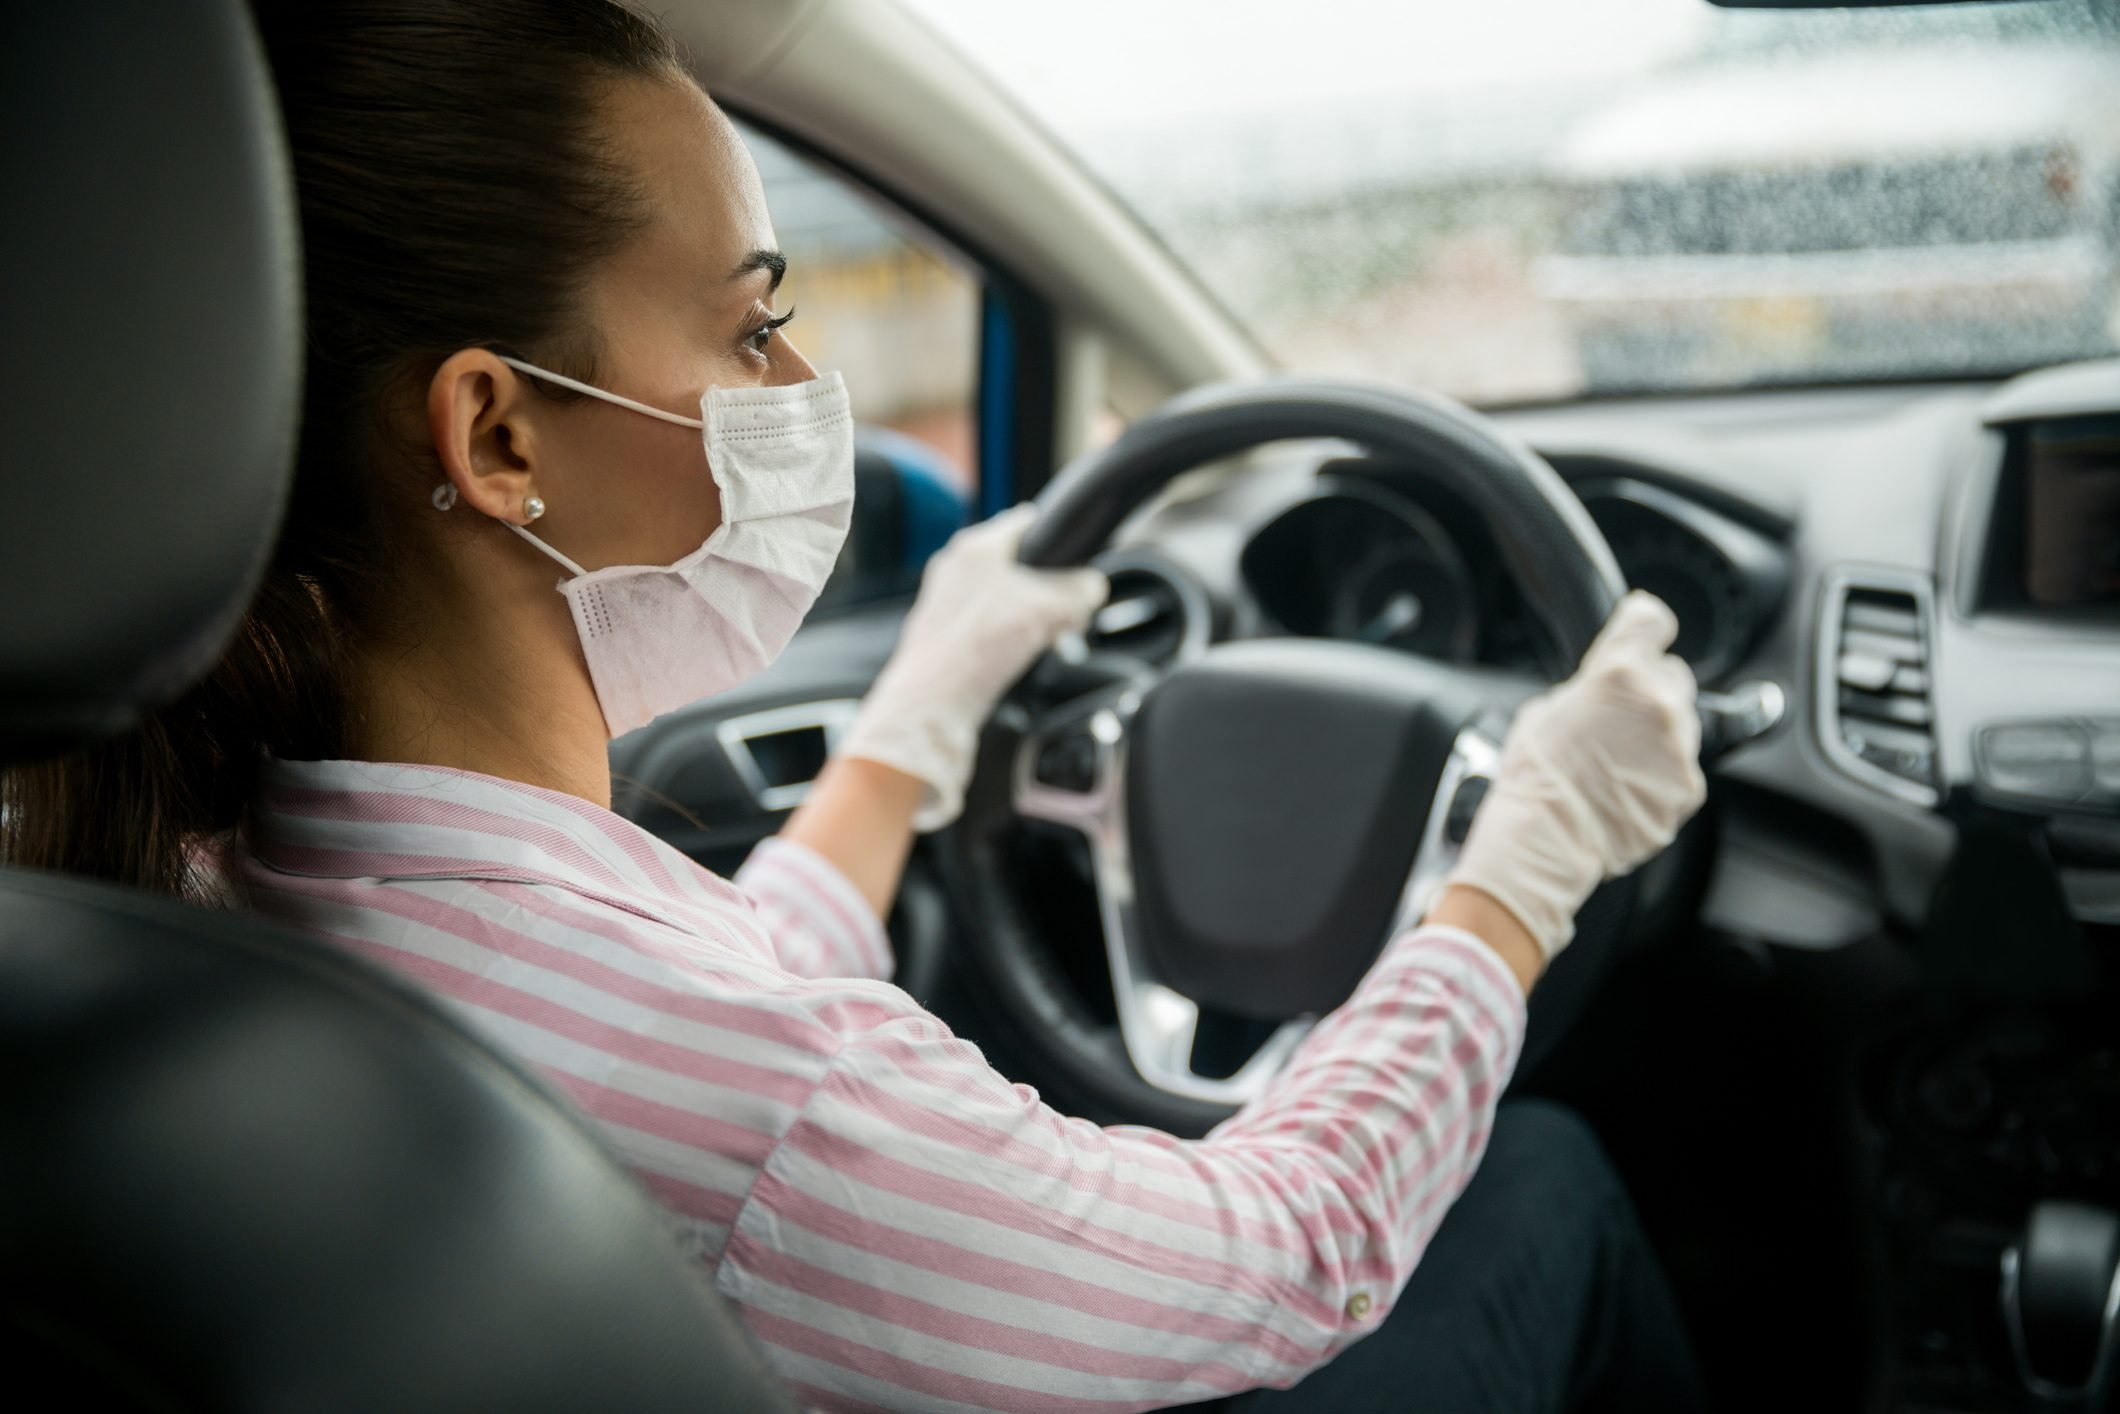 Female driver wearing a facemask and gloves in the car